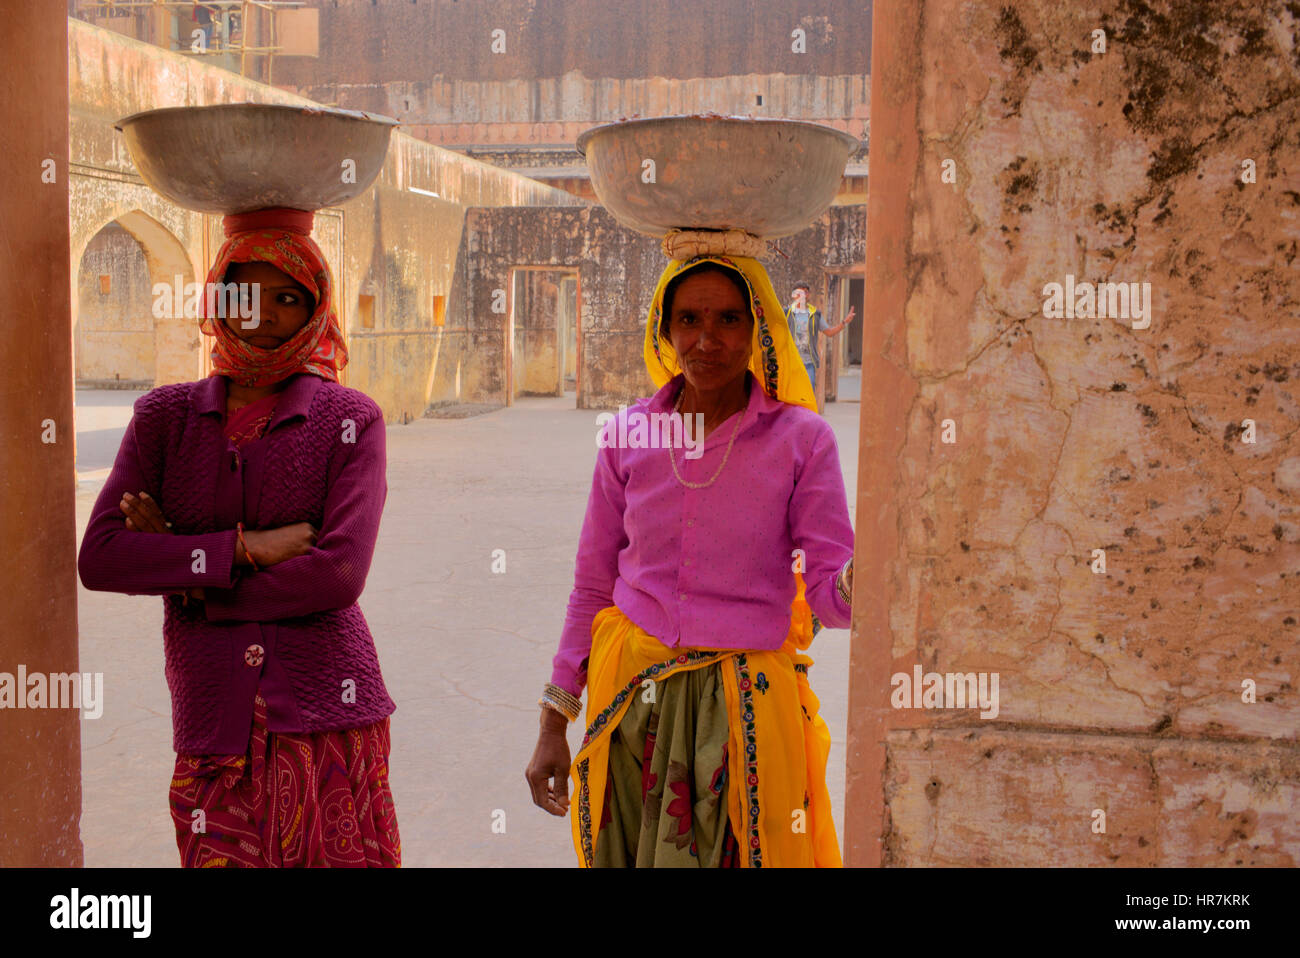 Women Labourers at Amber Fort, Jaipur, India - Stock Image